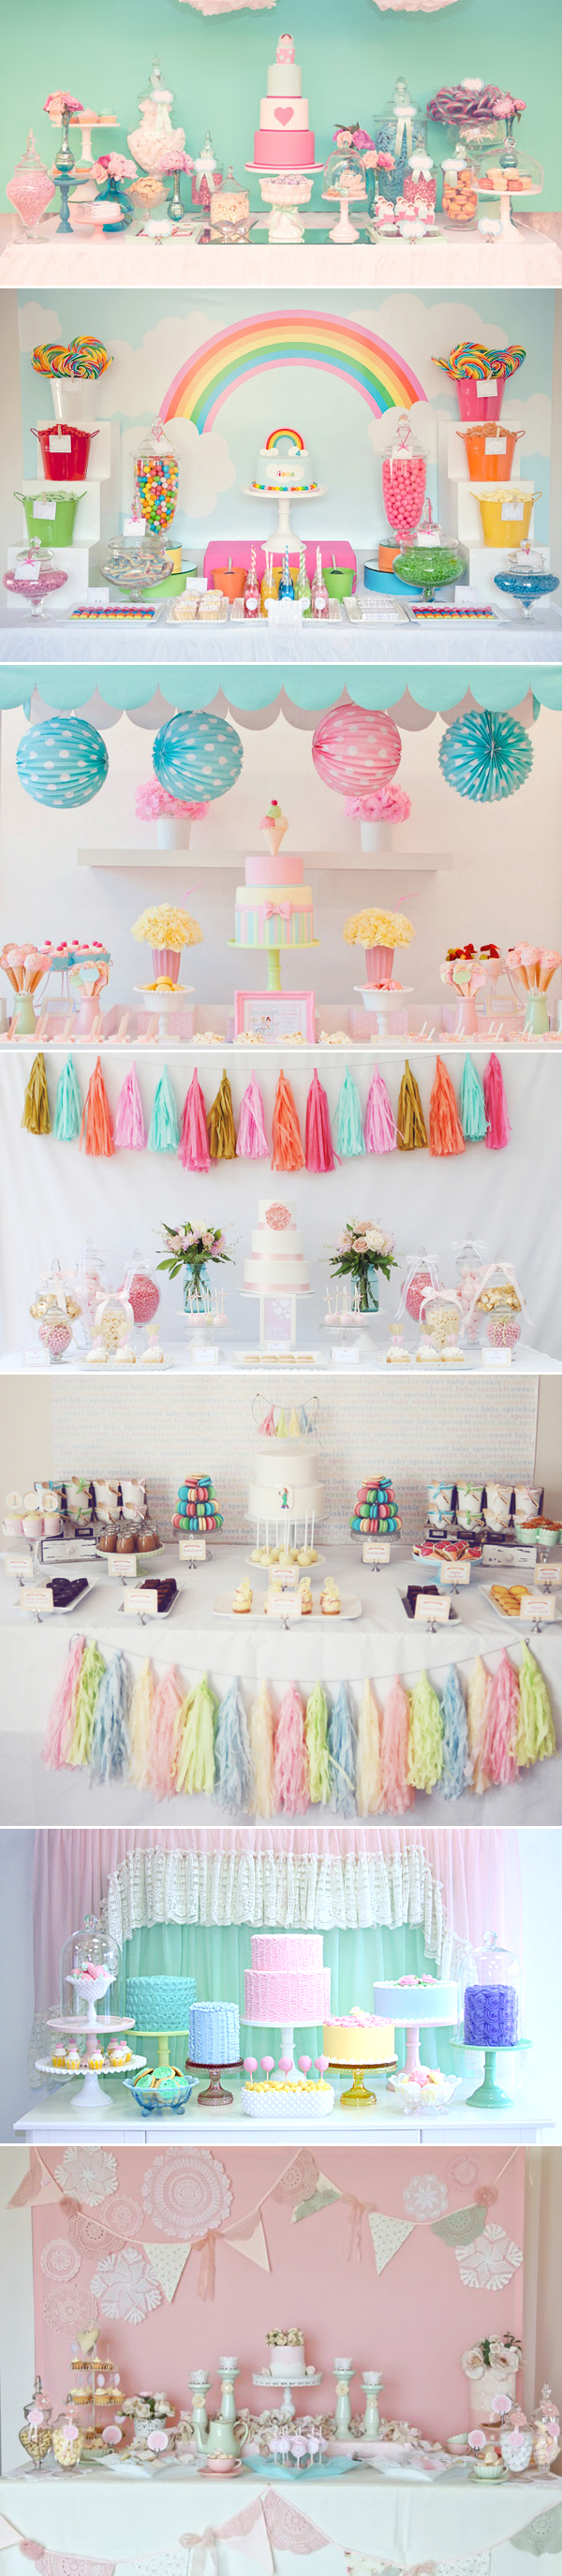 pastel dessert table02-colorful